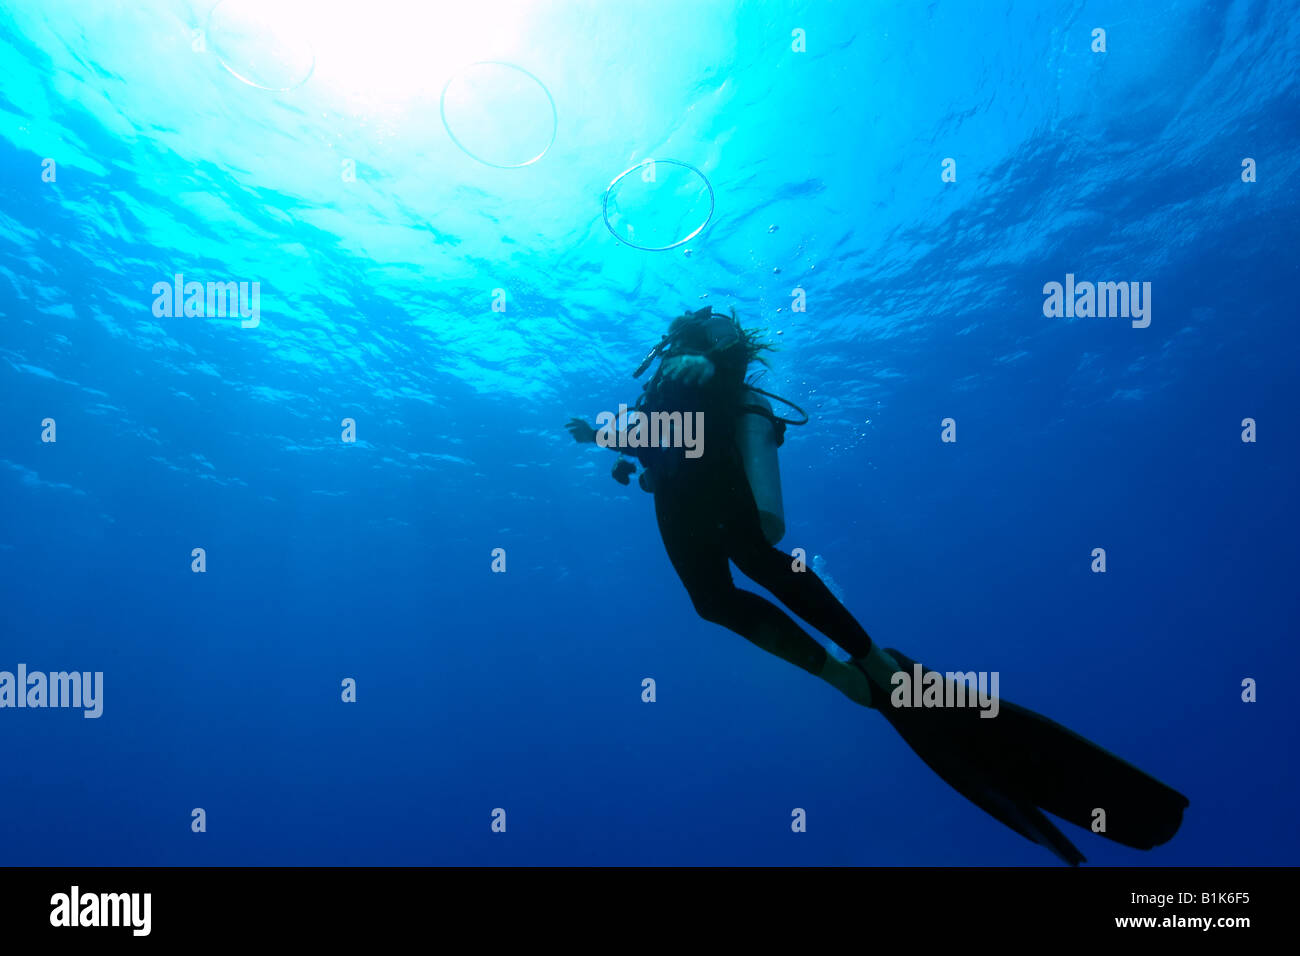 temple twitter adventures deep diver uwphotography u scuba ocean rini templeadventures instructor rings padi dsd status shooting bubble on diving templedivers india